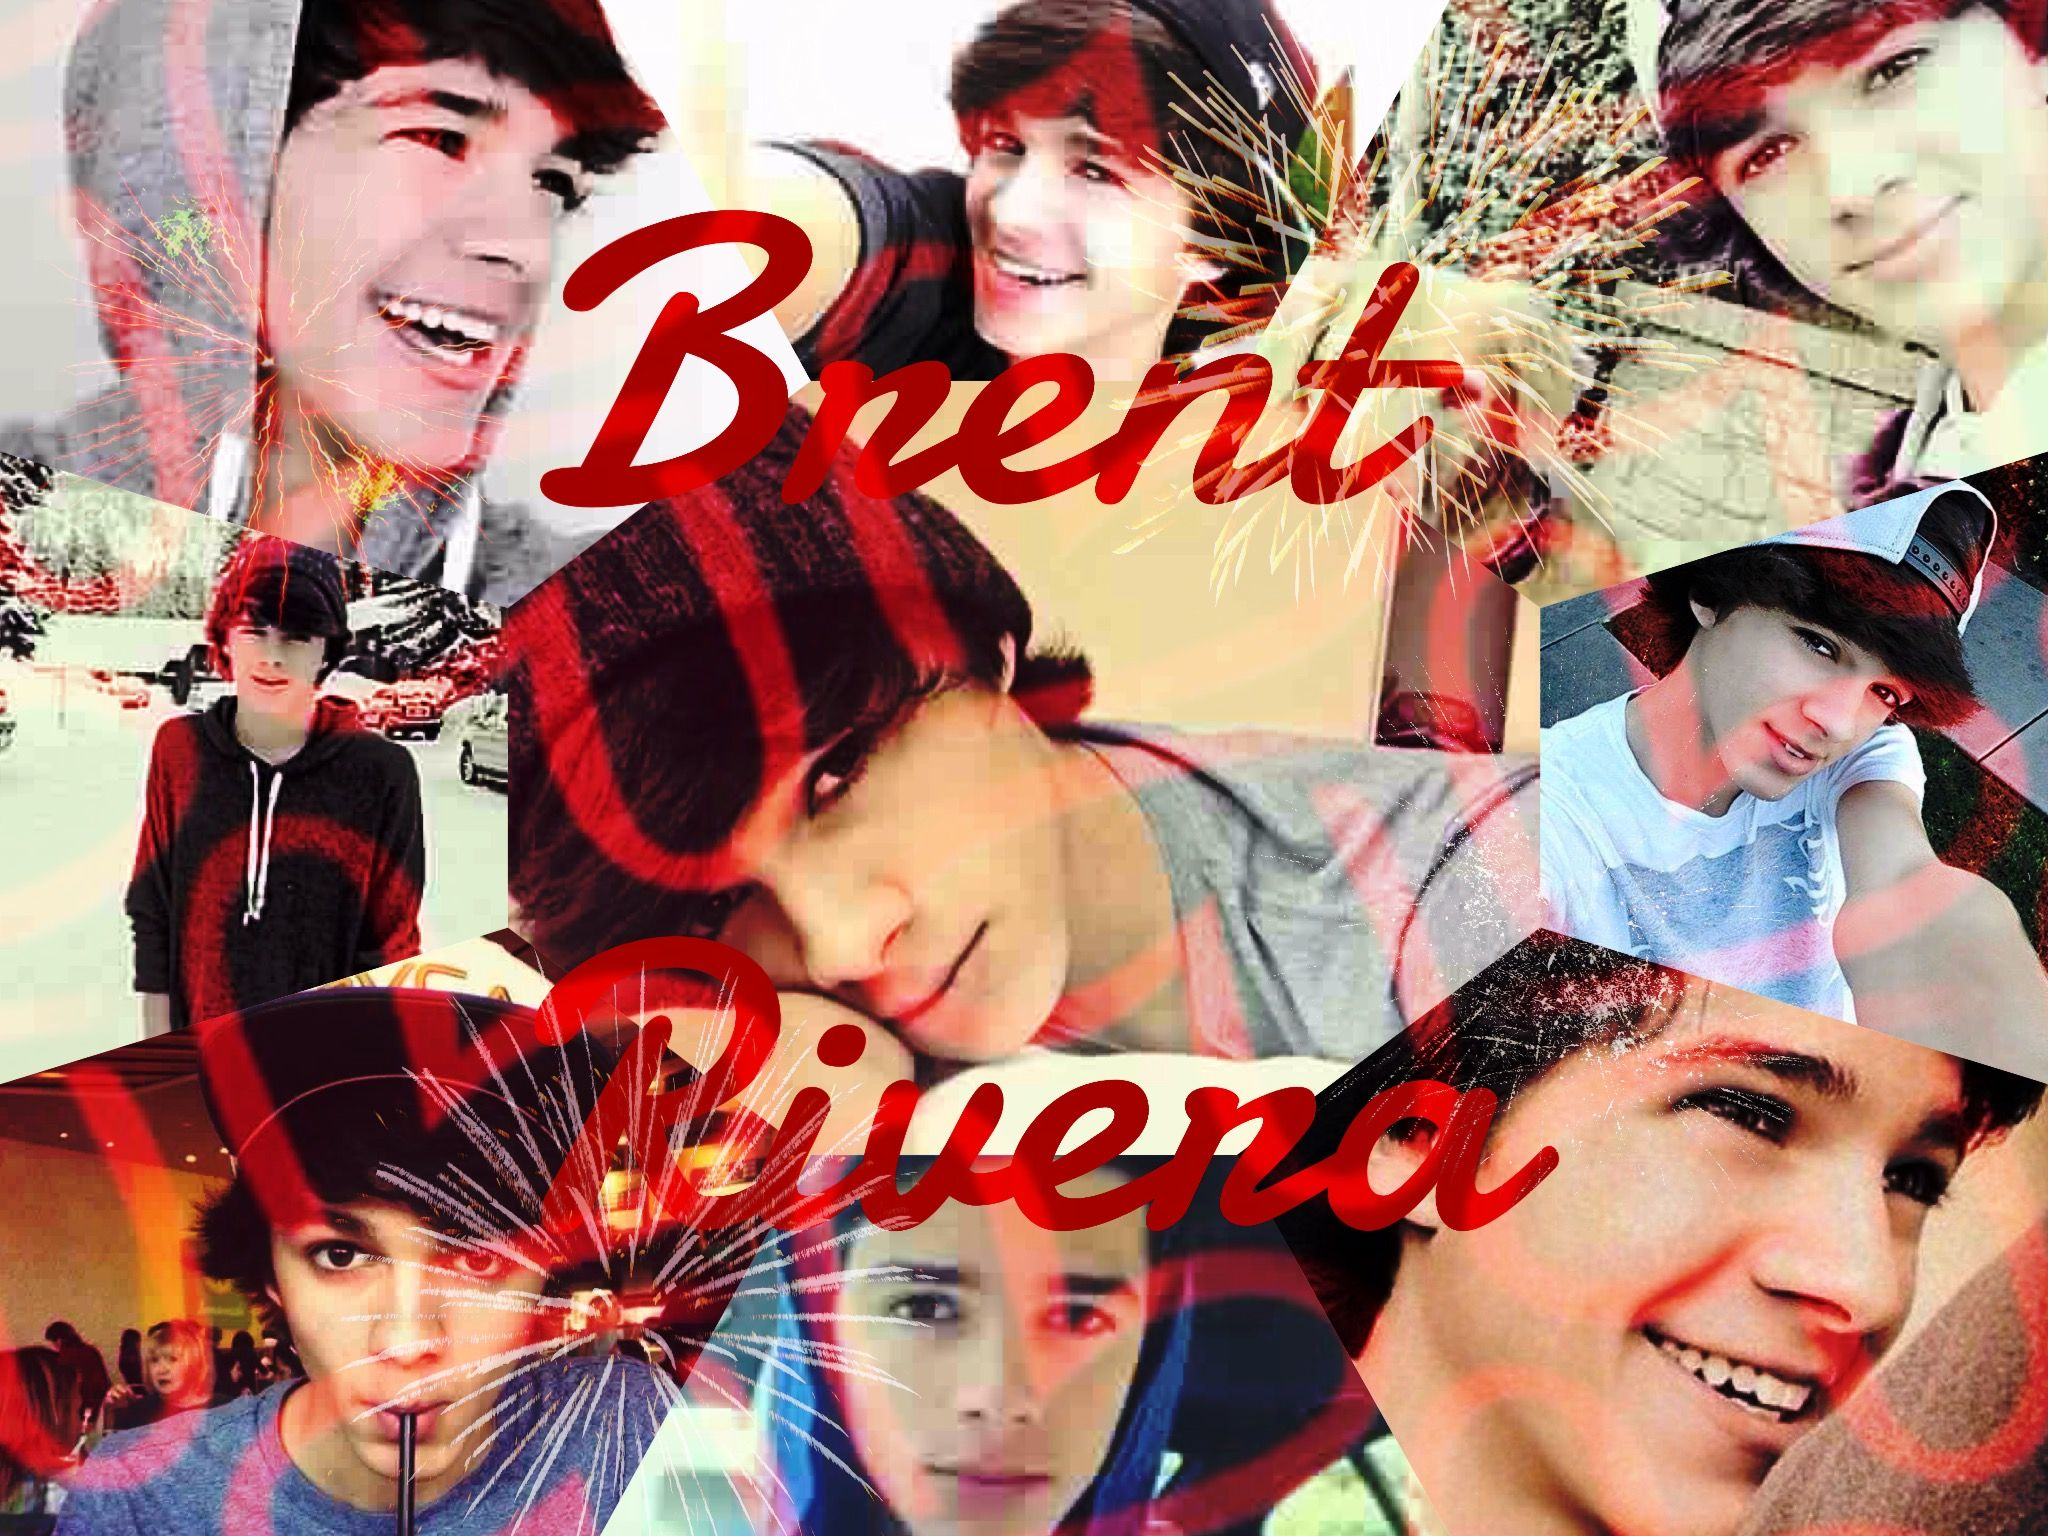 Brent Rivera collage made by Kaitlyn's Collages ...